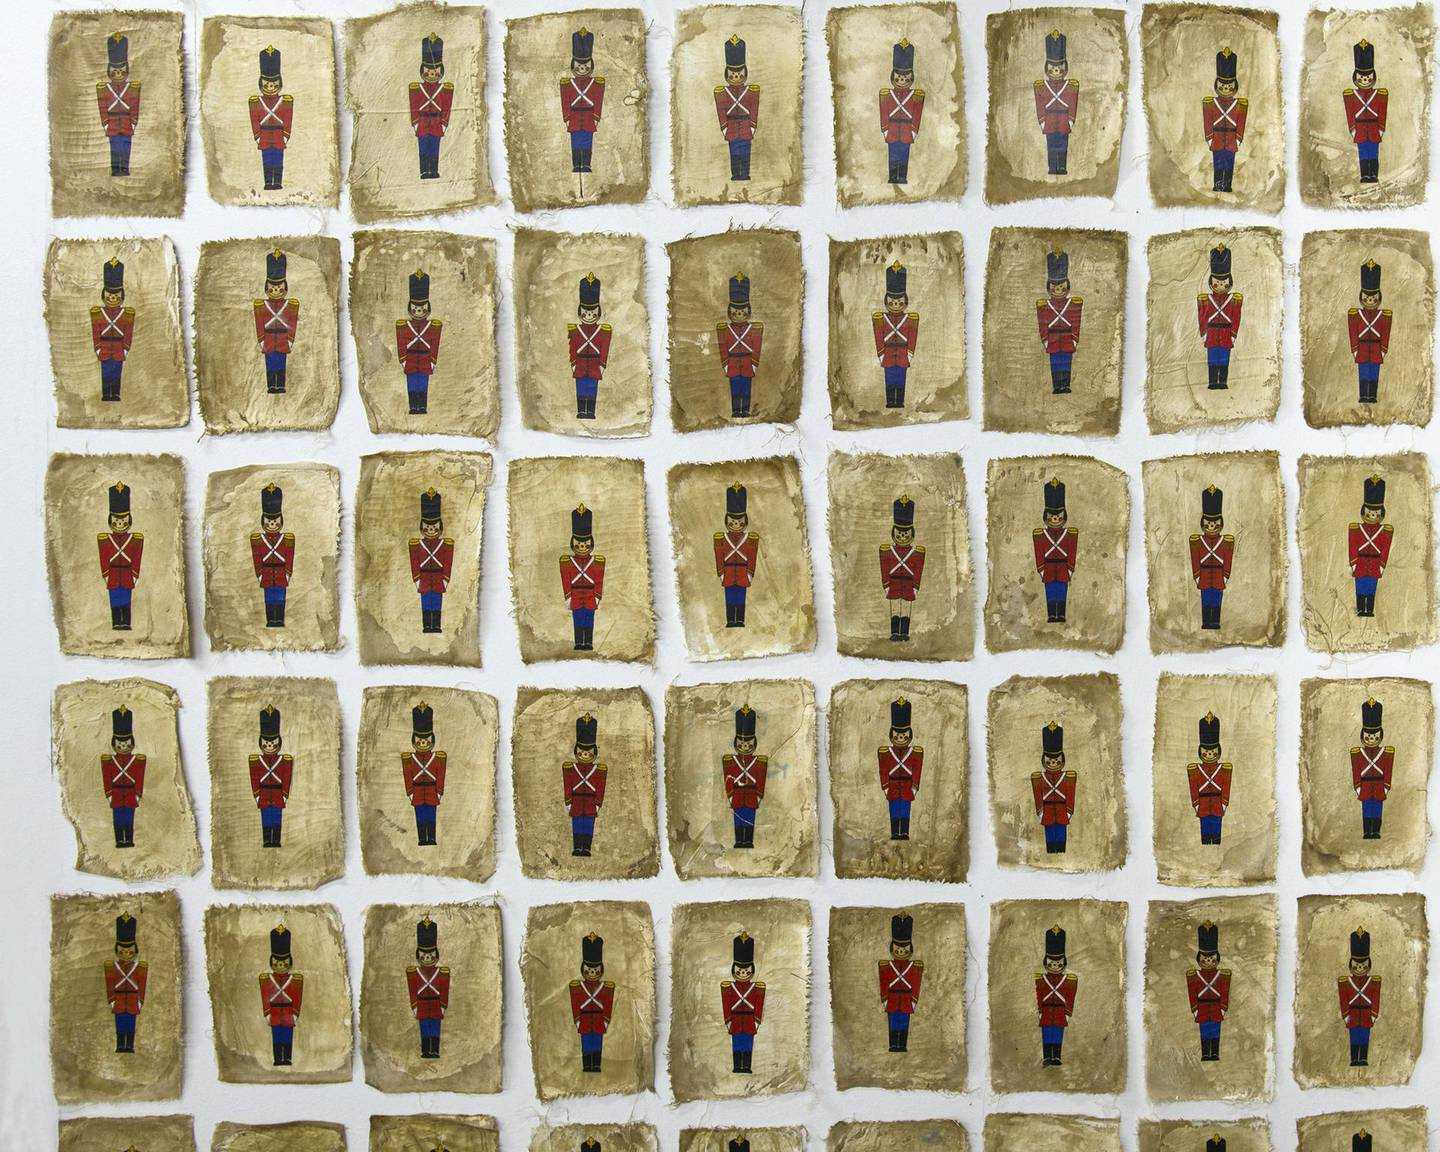 Mohamed Monaiseer's Toy Soldiers (2015-18) at Athr Gallery, Jeddah. Courtesy Athr Gallery and the artist